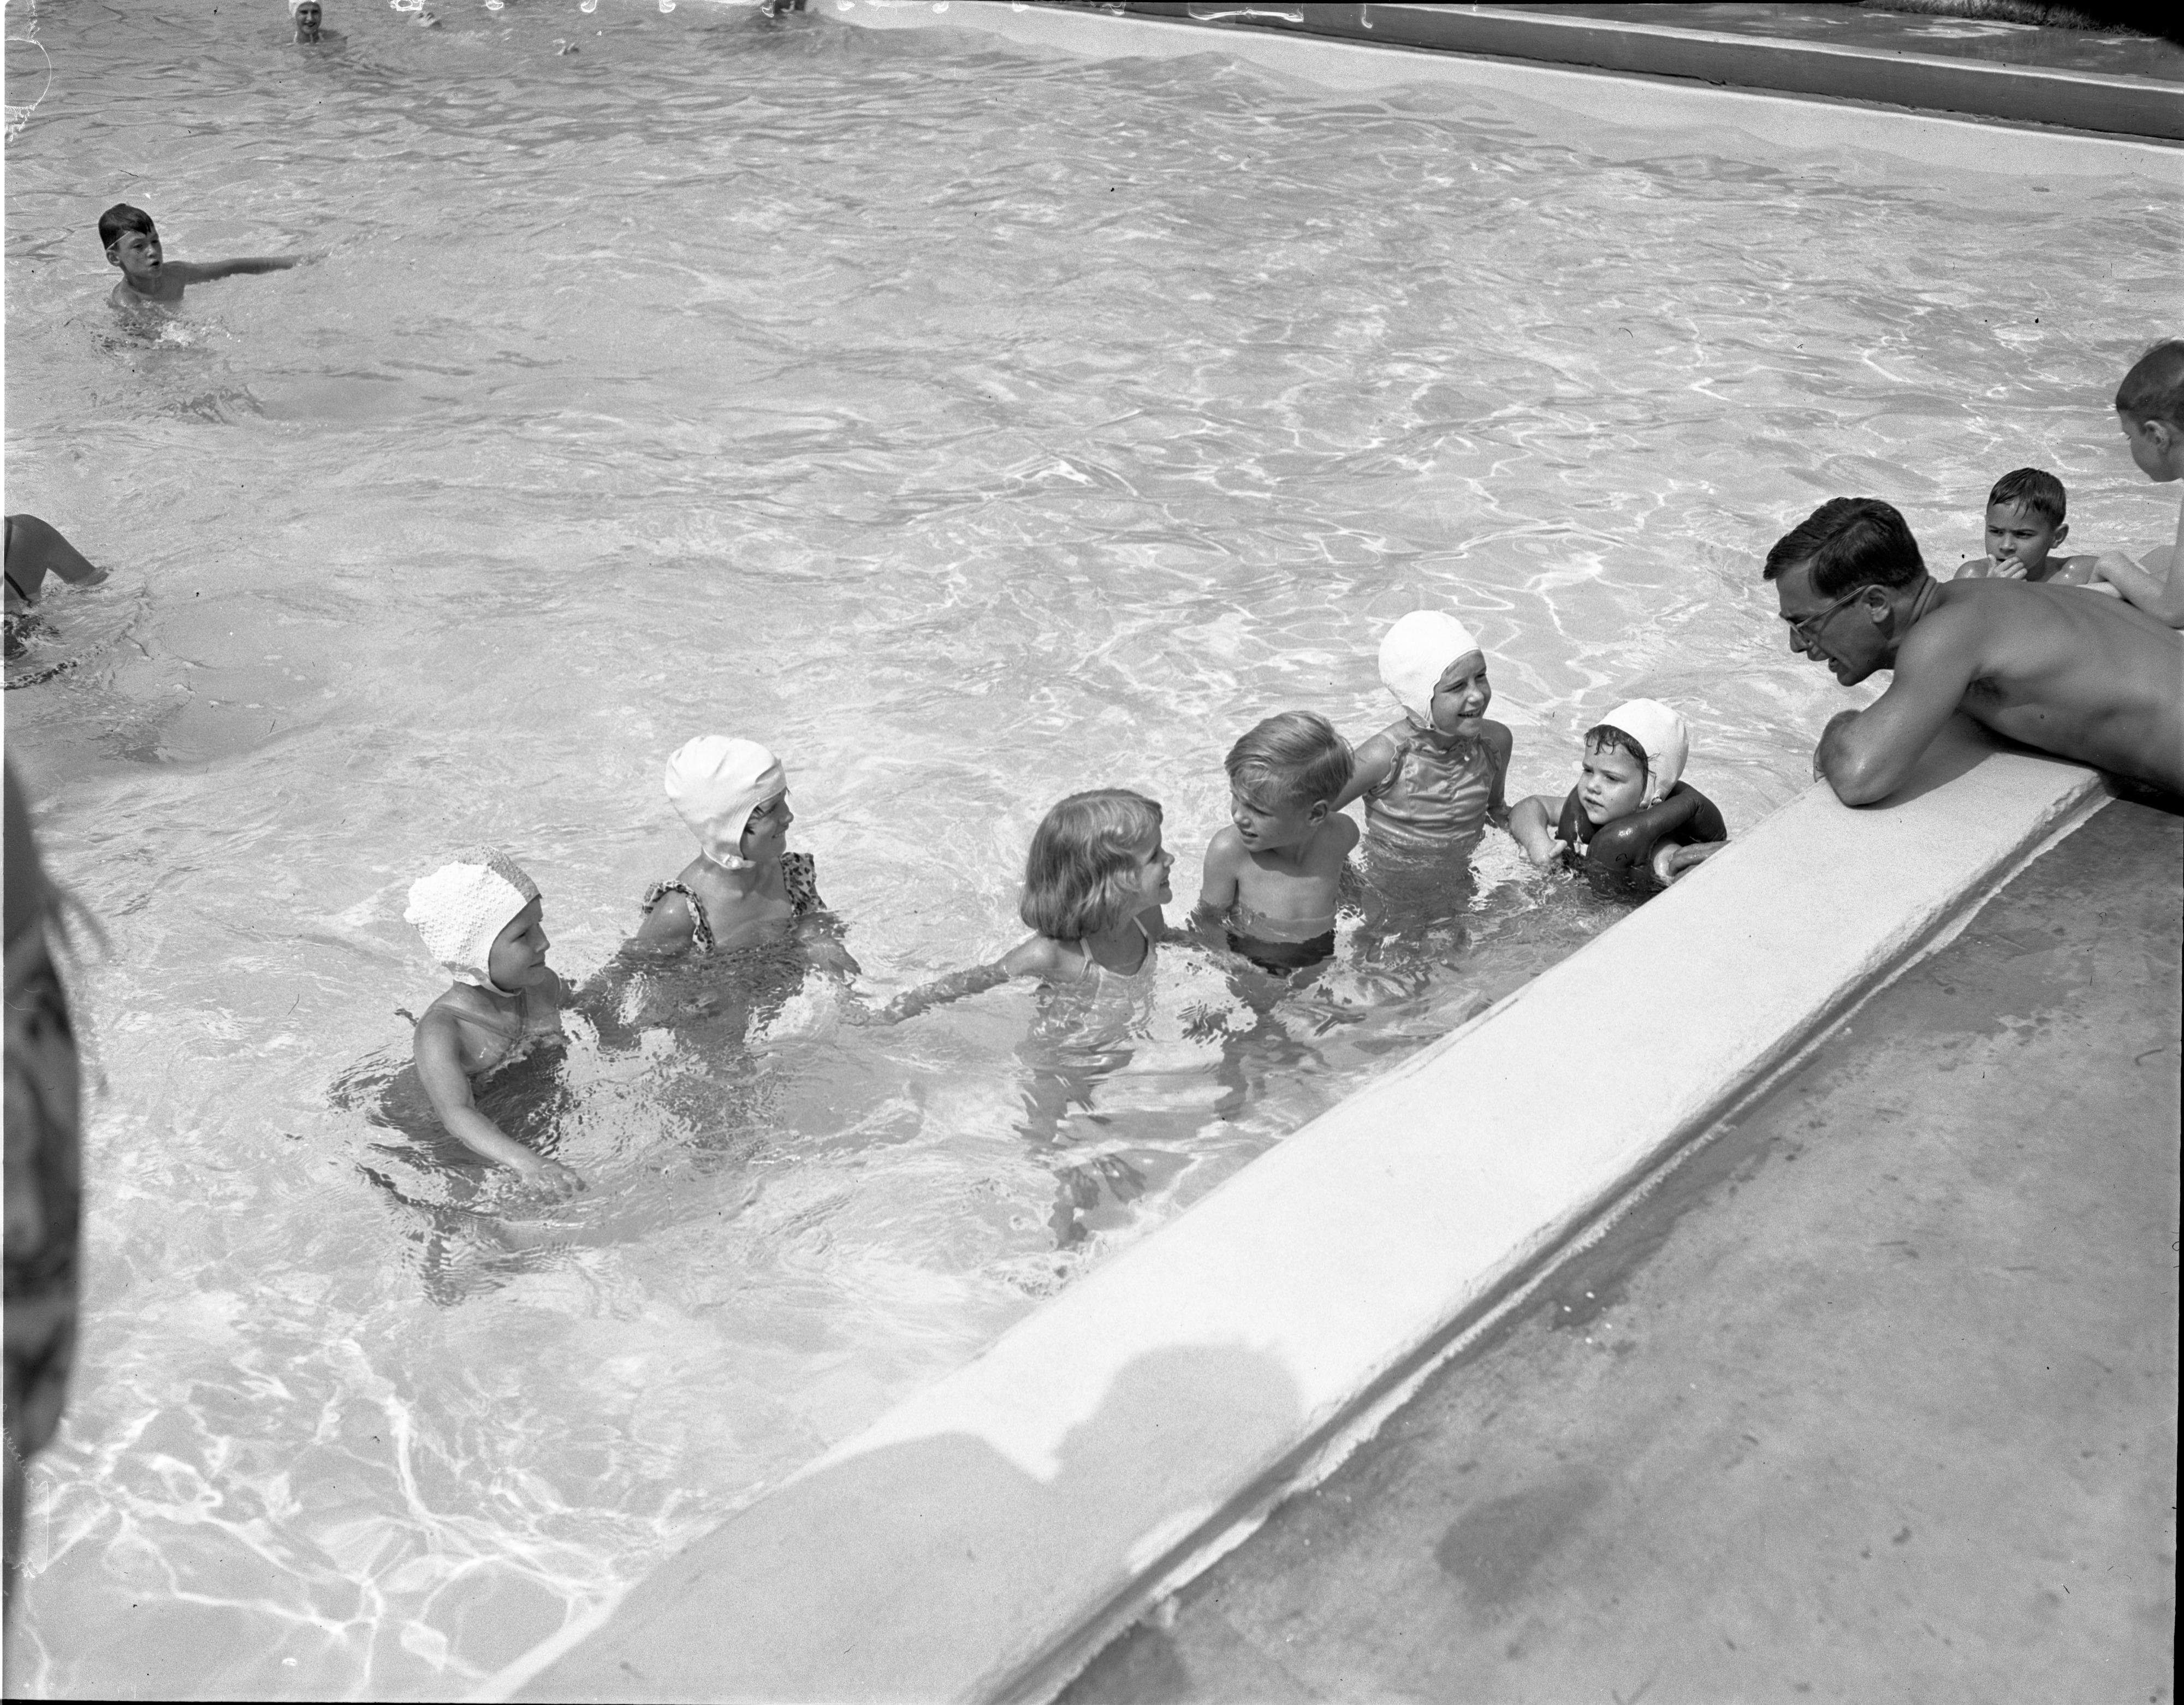 Alex Canja Gives Swimming Advice To Children At Barton Hills Country Club, July 1951 image